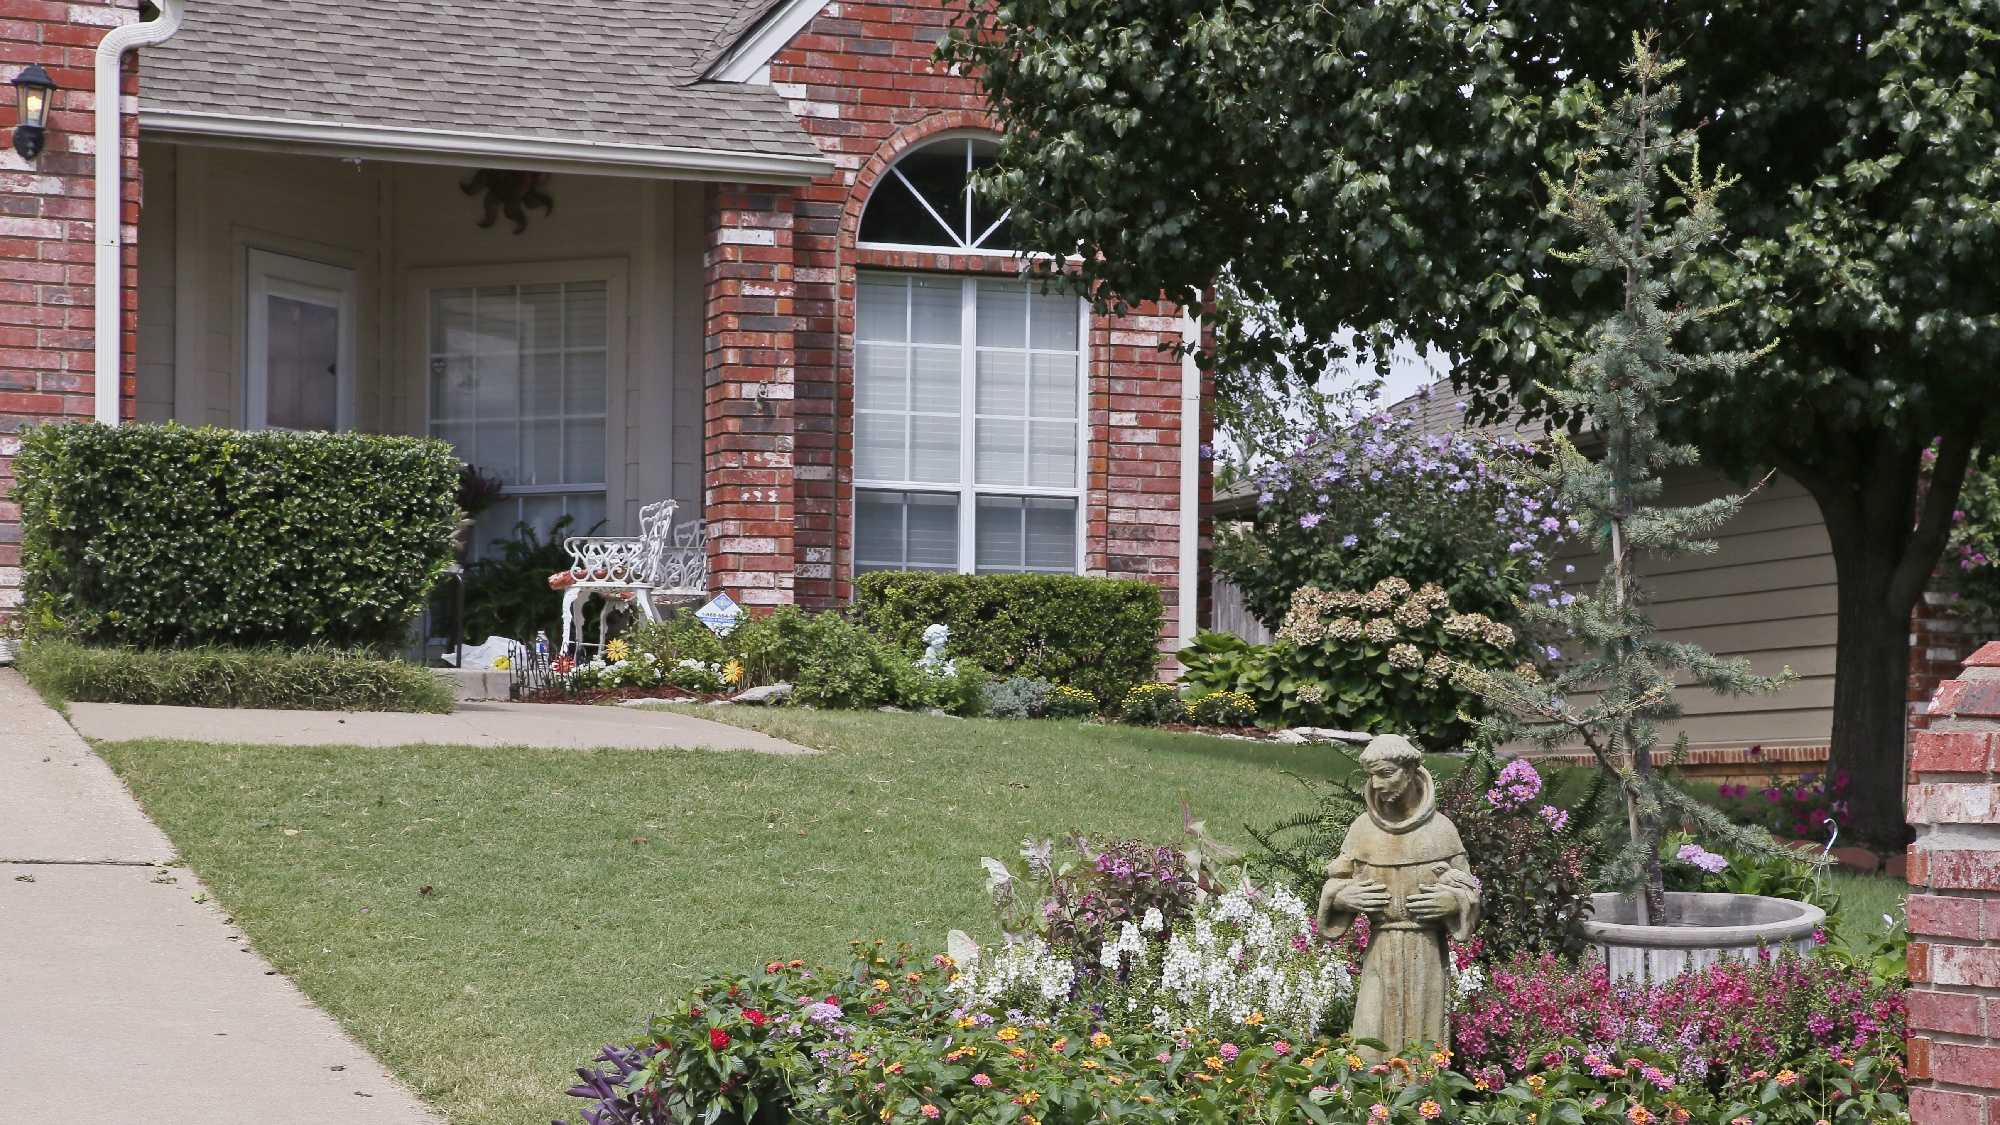 Flowers and a statue of St. Francis in a memorial display are pictured on the front lawn of the Jabara family in Tulsa, Okla., Friday, Aug. 19, 2016. Khalid Jabara was allegedly shot and killed outside his home by neighbor Stanley Majors on Aug. 12, 2016. (AP Photo/Sue Ogrocki)